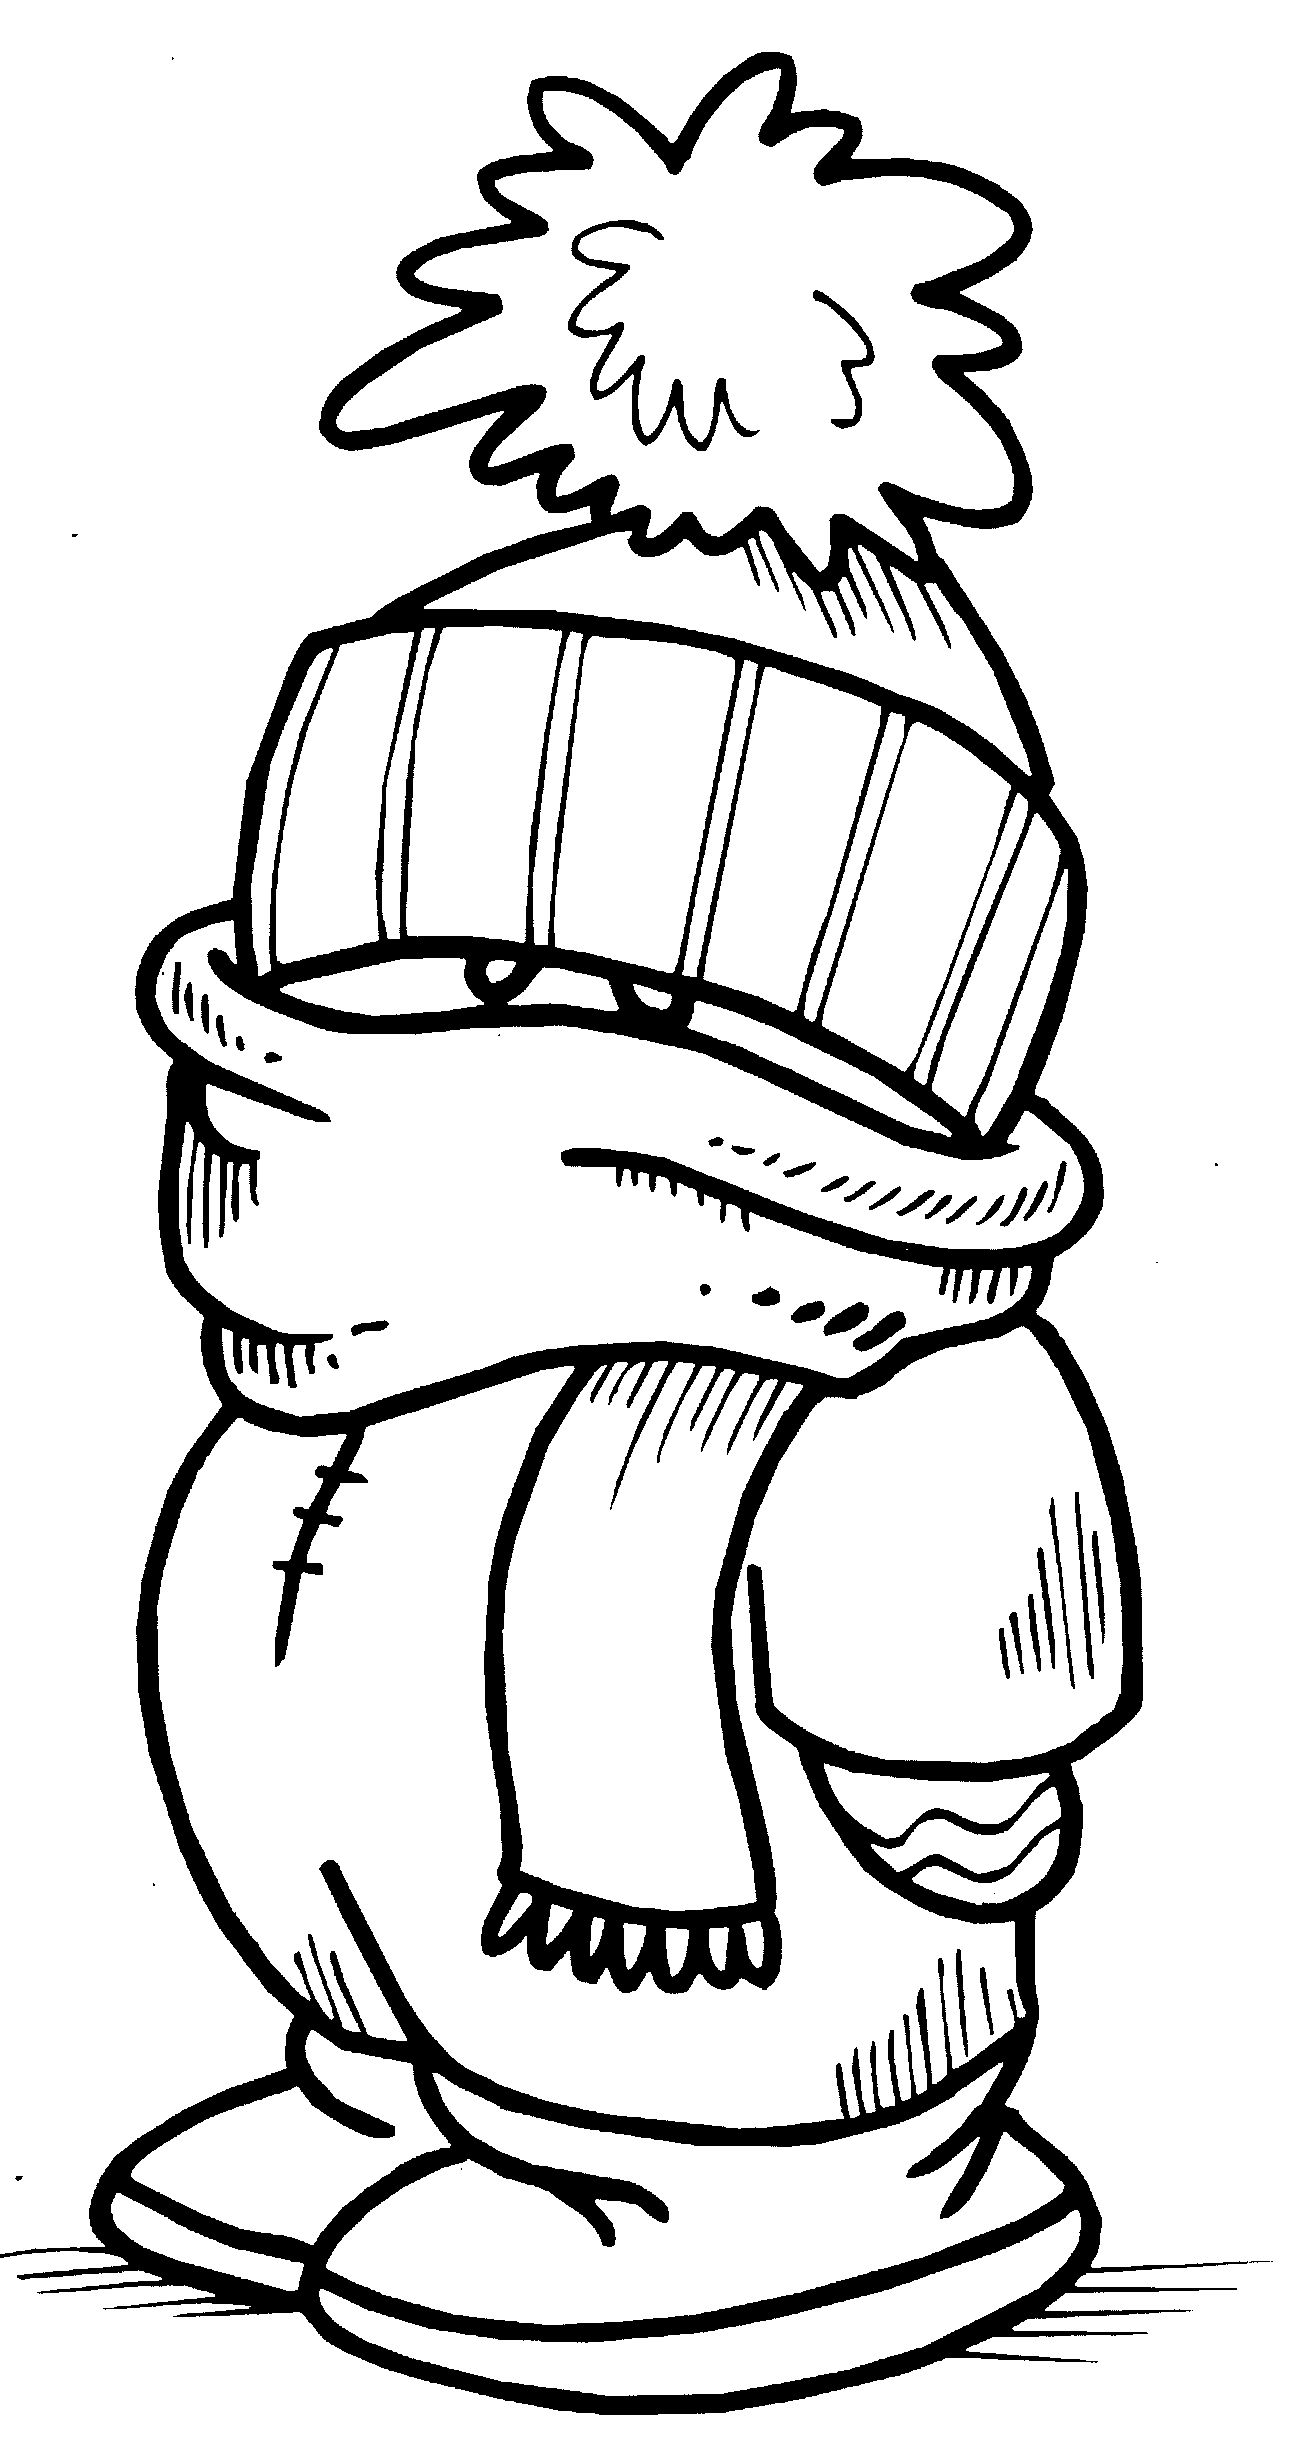 1289x2451 Printable Interactive Winter Coloring Pages, Winter Coloring Pages